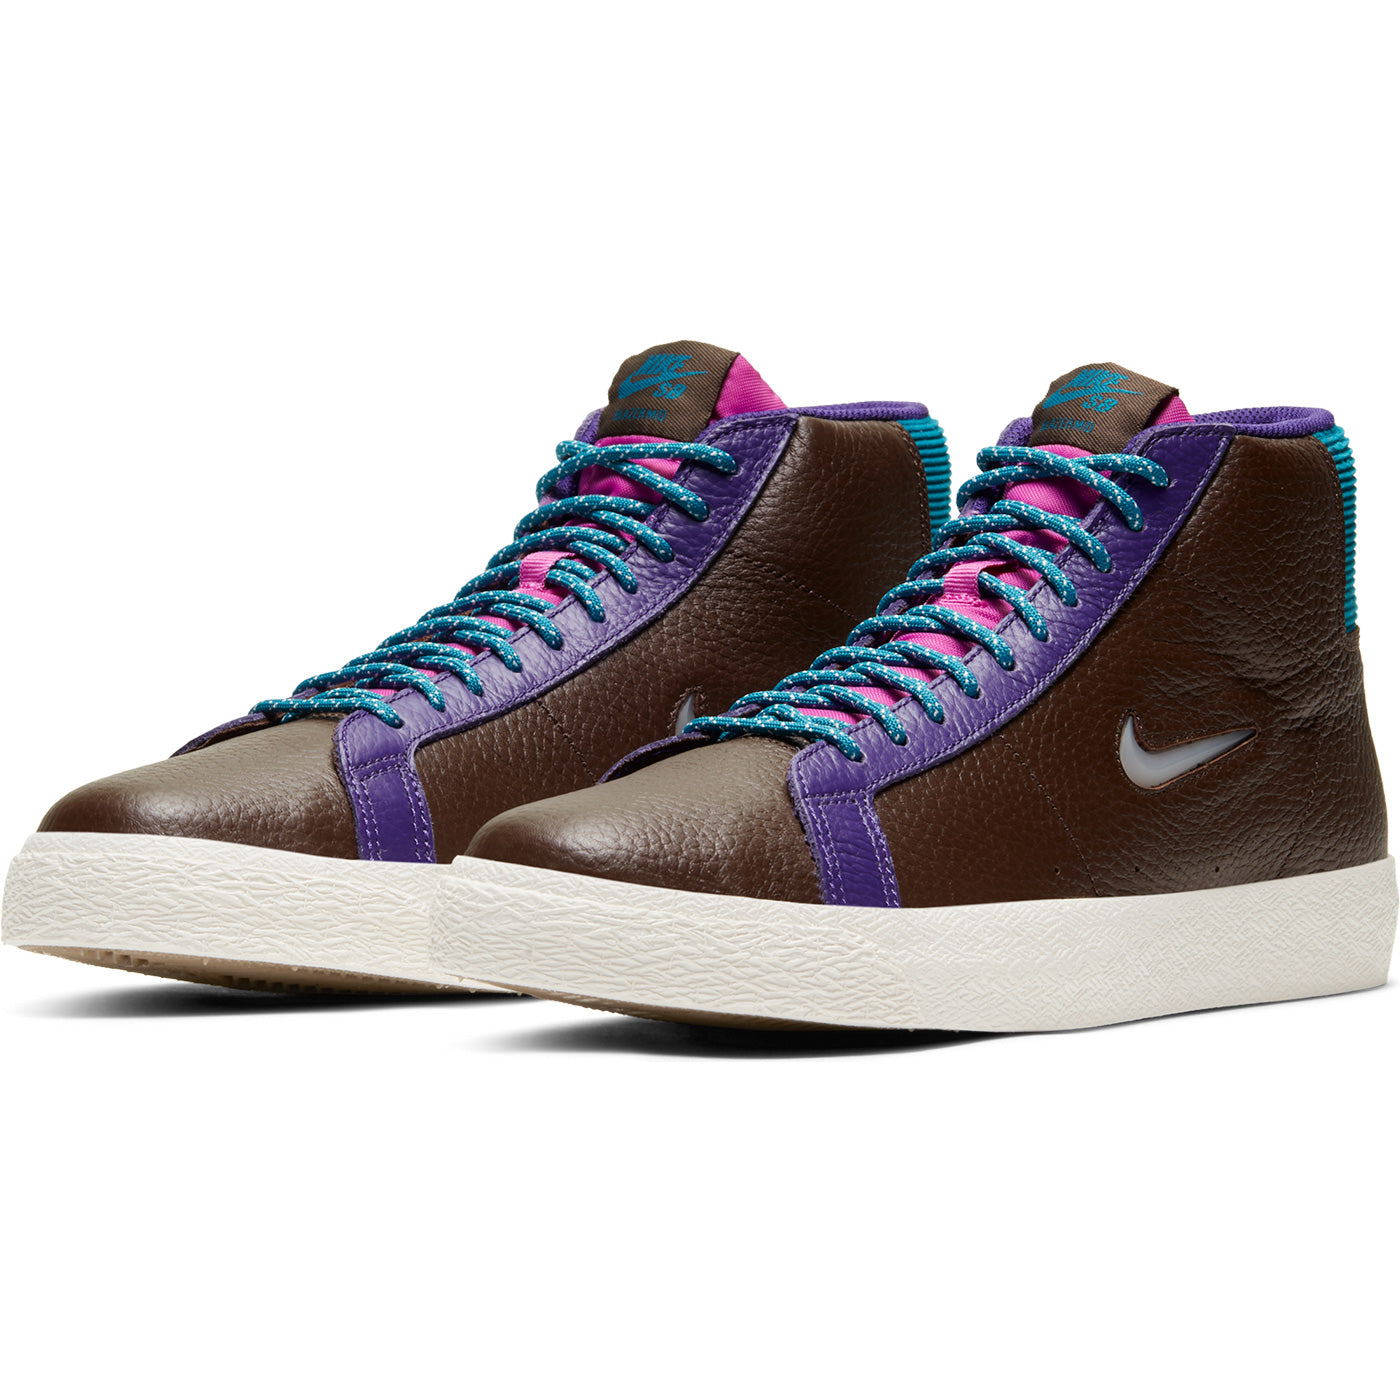 Nike SB Blazer Mid Premium Shoes - Baroque Brown/White Green-Abyss